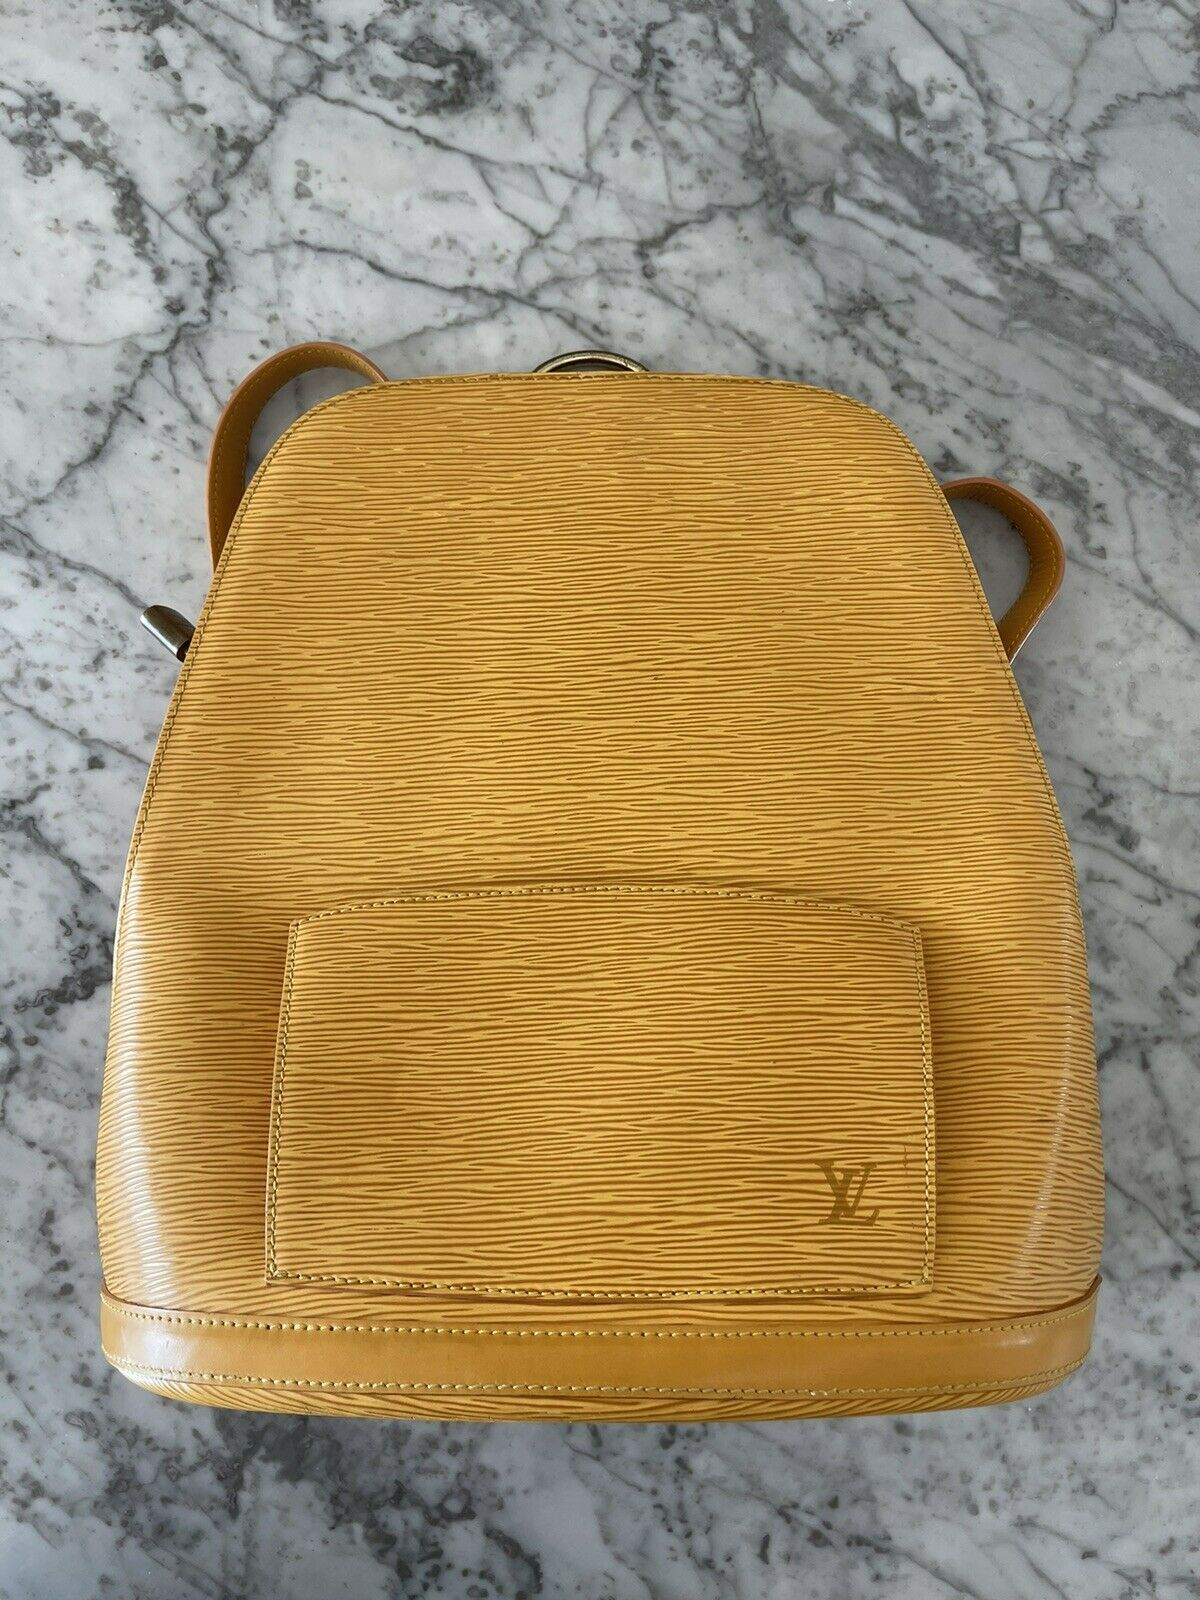 louis vuitton backpack - image 2